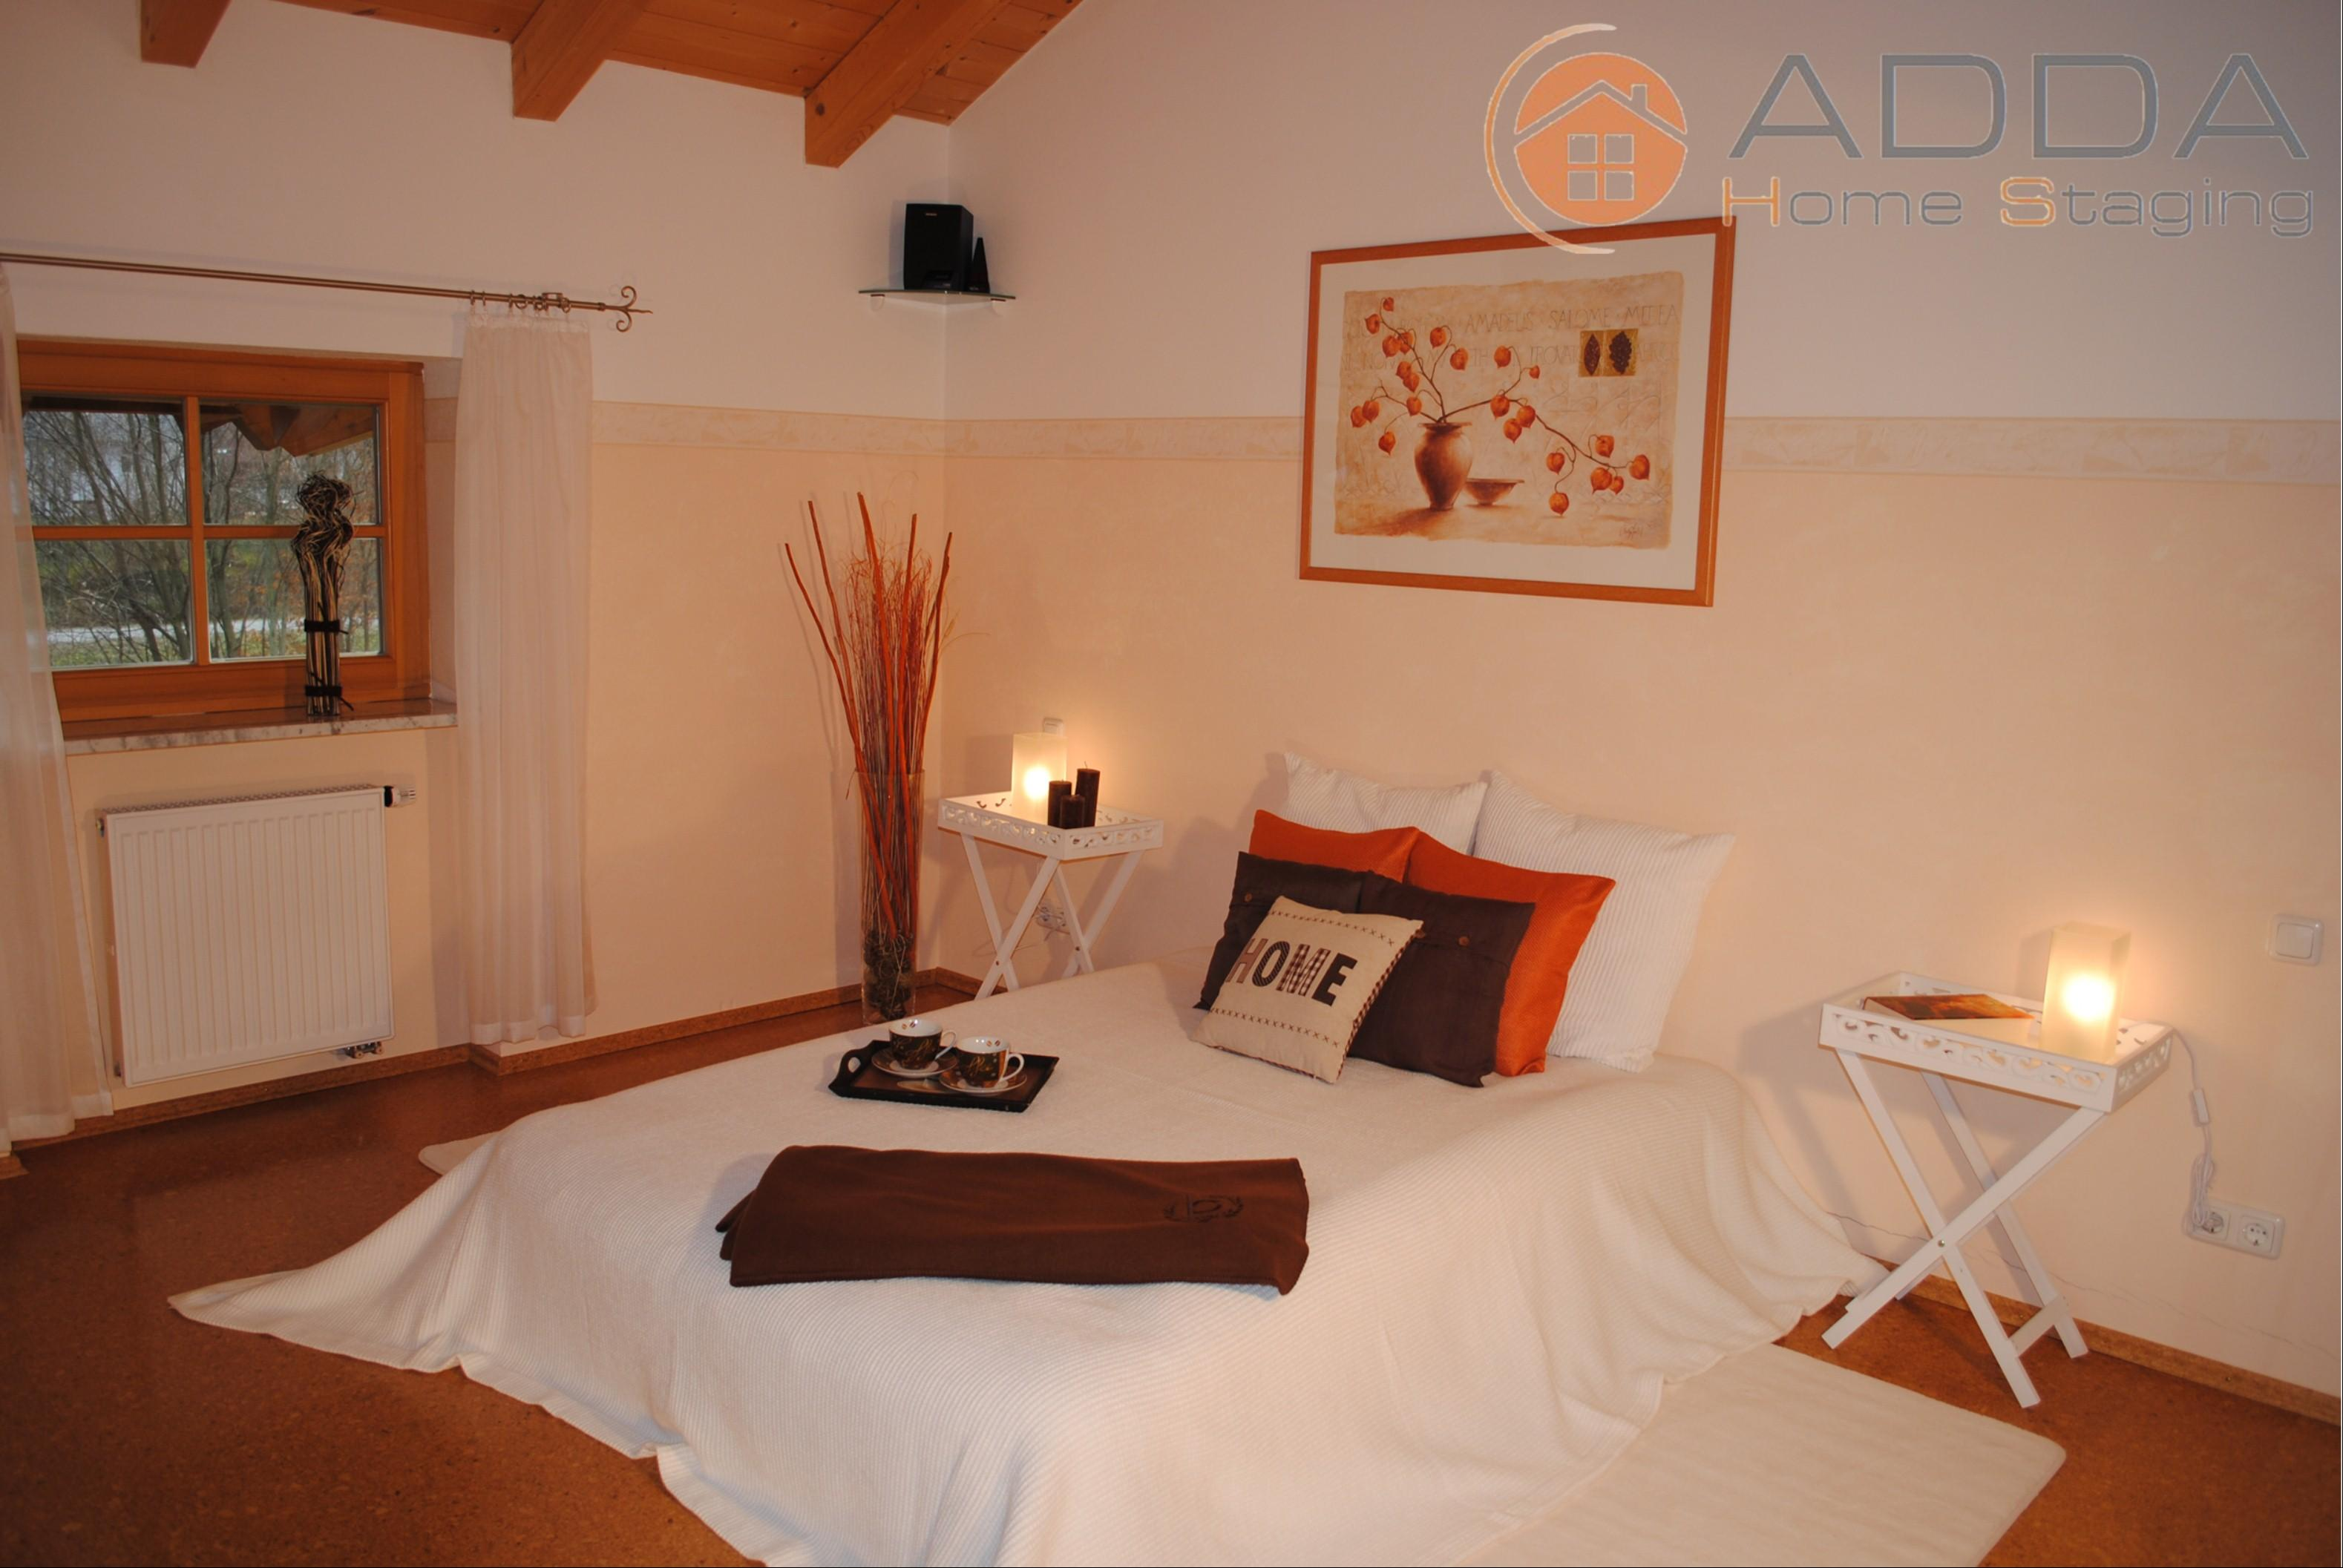 Schlafzimmer nach dem Home Staging #bilderrahmen #landhausstil #hotelzimmer ©ADDA Home Staging